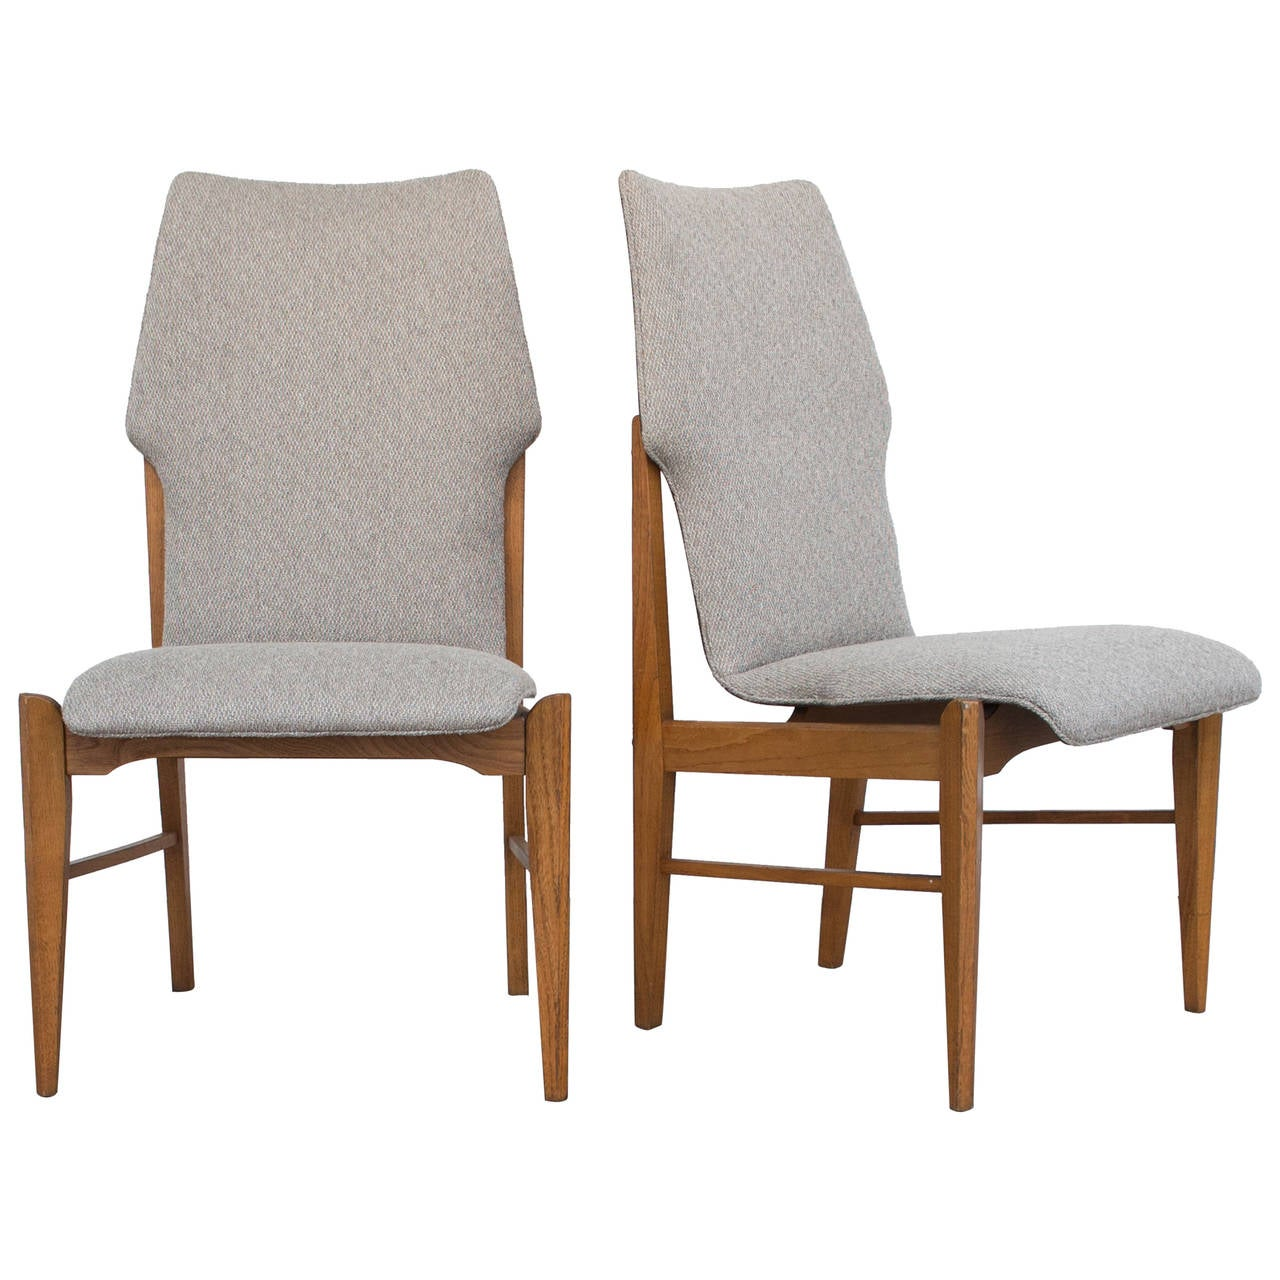 Modern Dining Chairs Four Kodawood Danish Modern Dining Chairs At 1stdibs